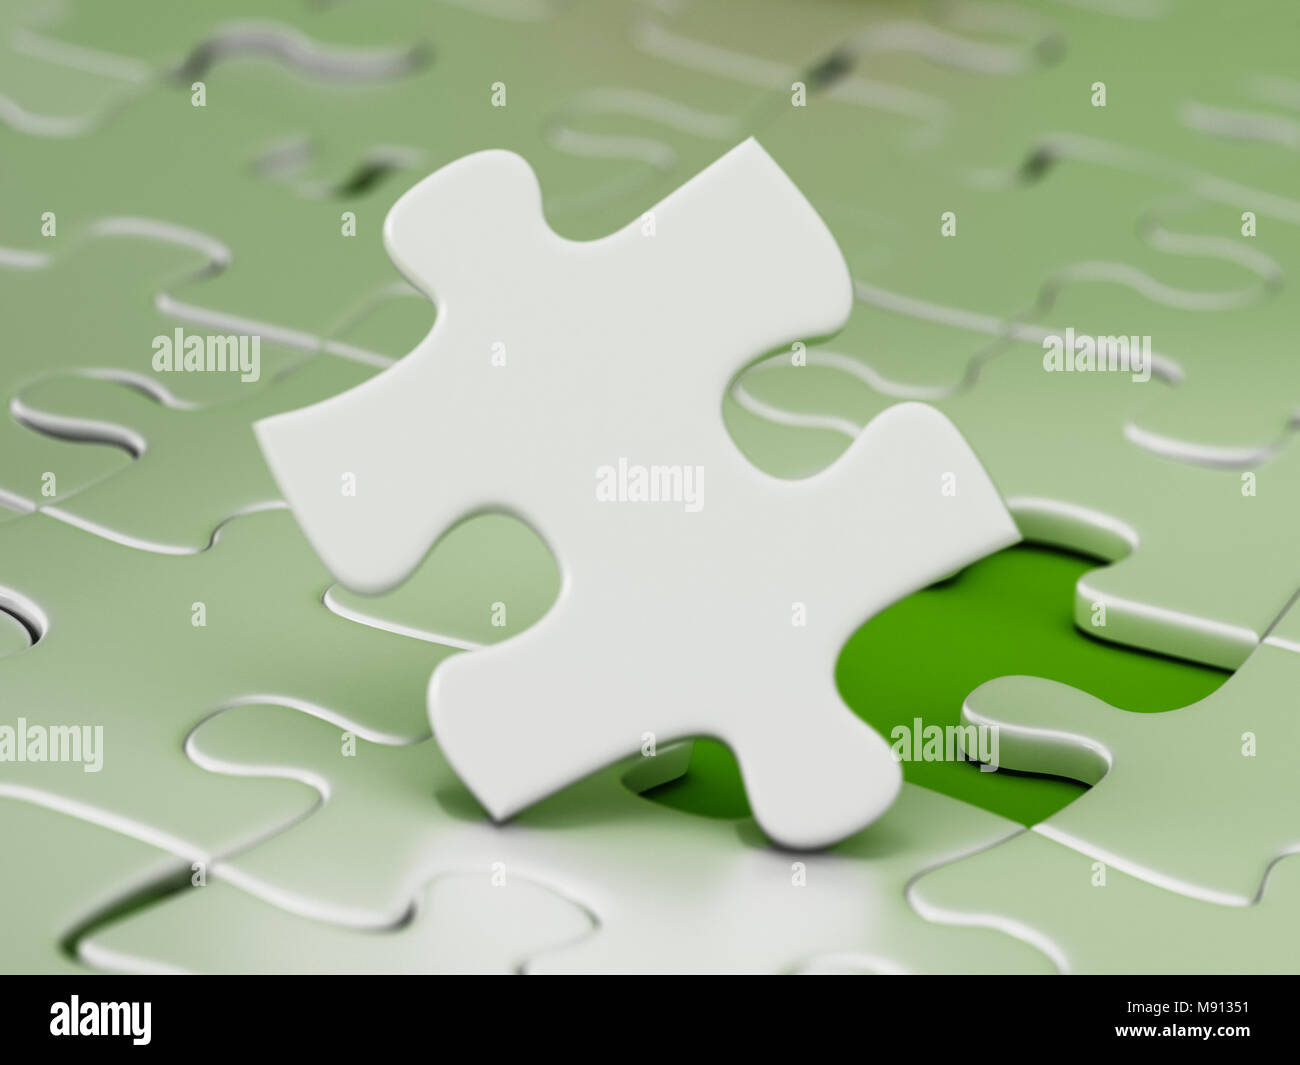 Jigsaw puzzle piece standing next to the missing part hole. 3D illustration. - Stock Image